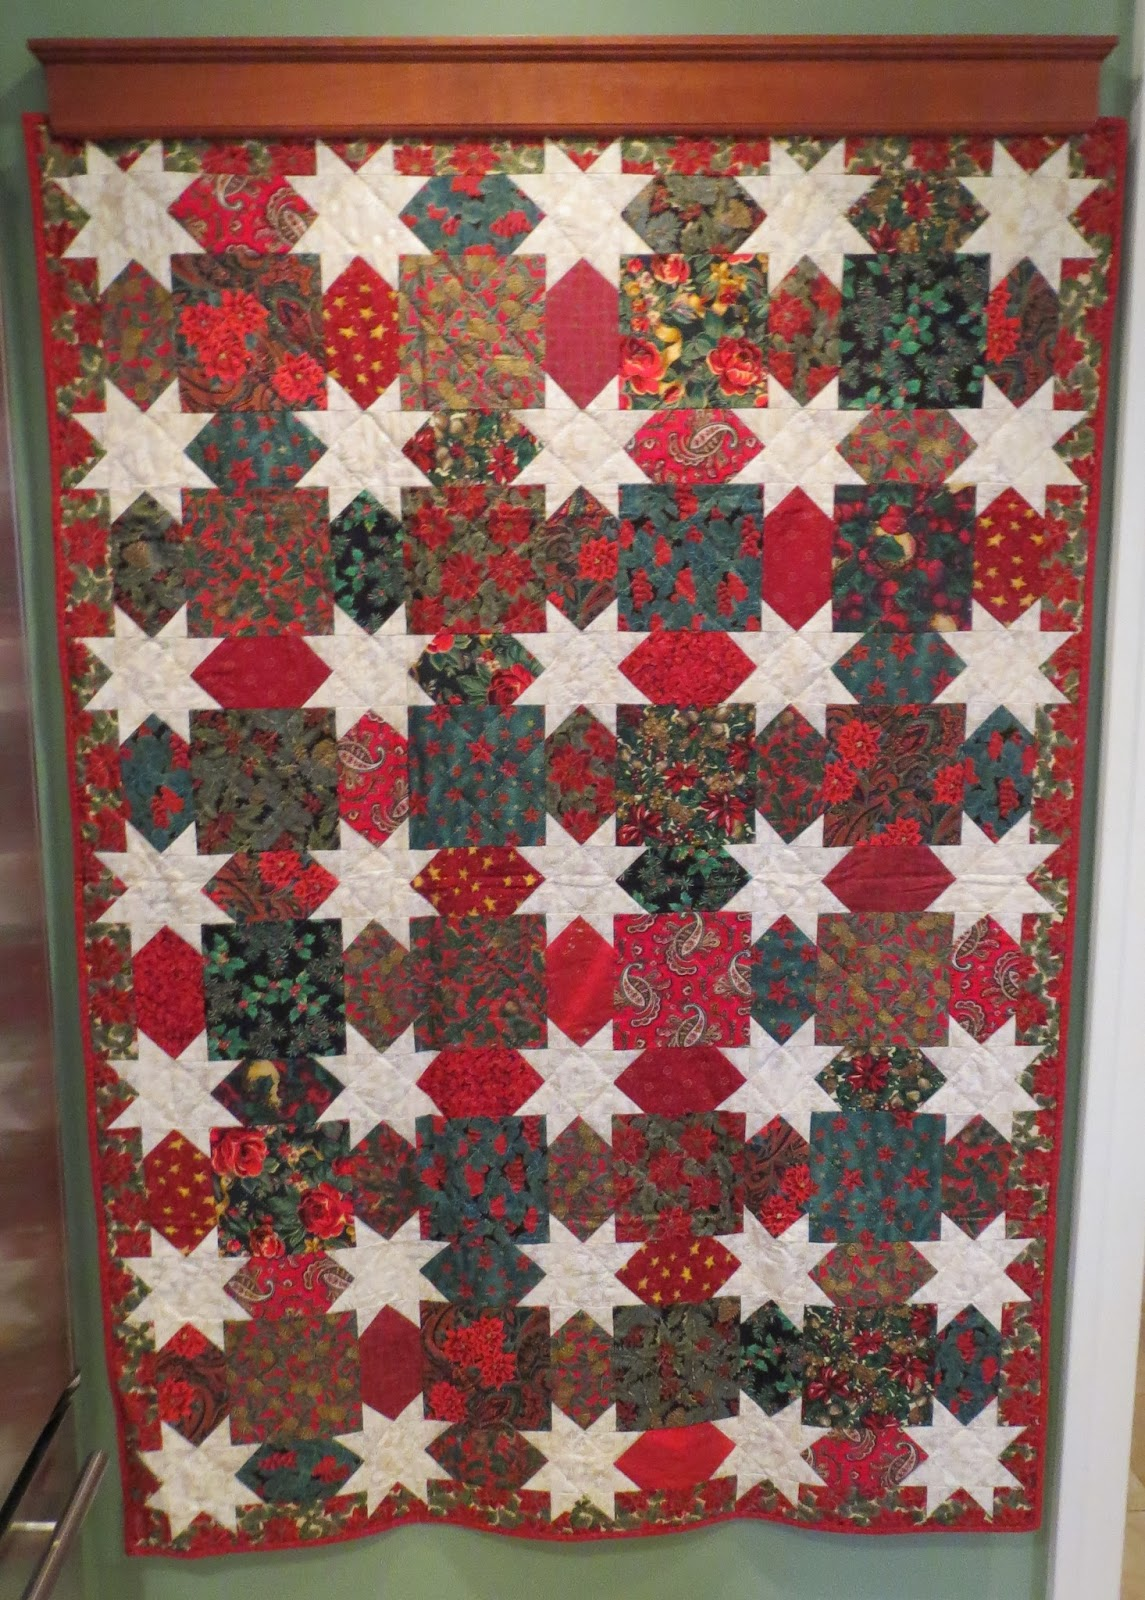 Quilting Patterns For Christmas : Quilting on Main Street: Christmas Quilts Past